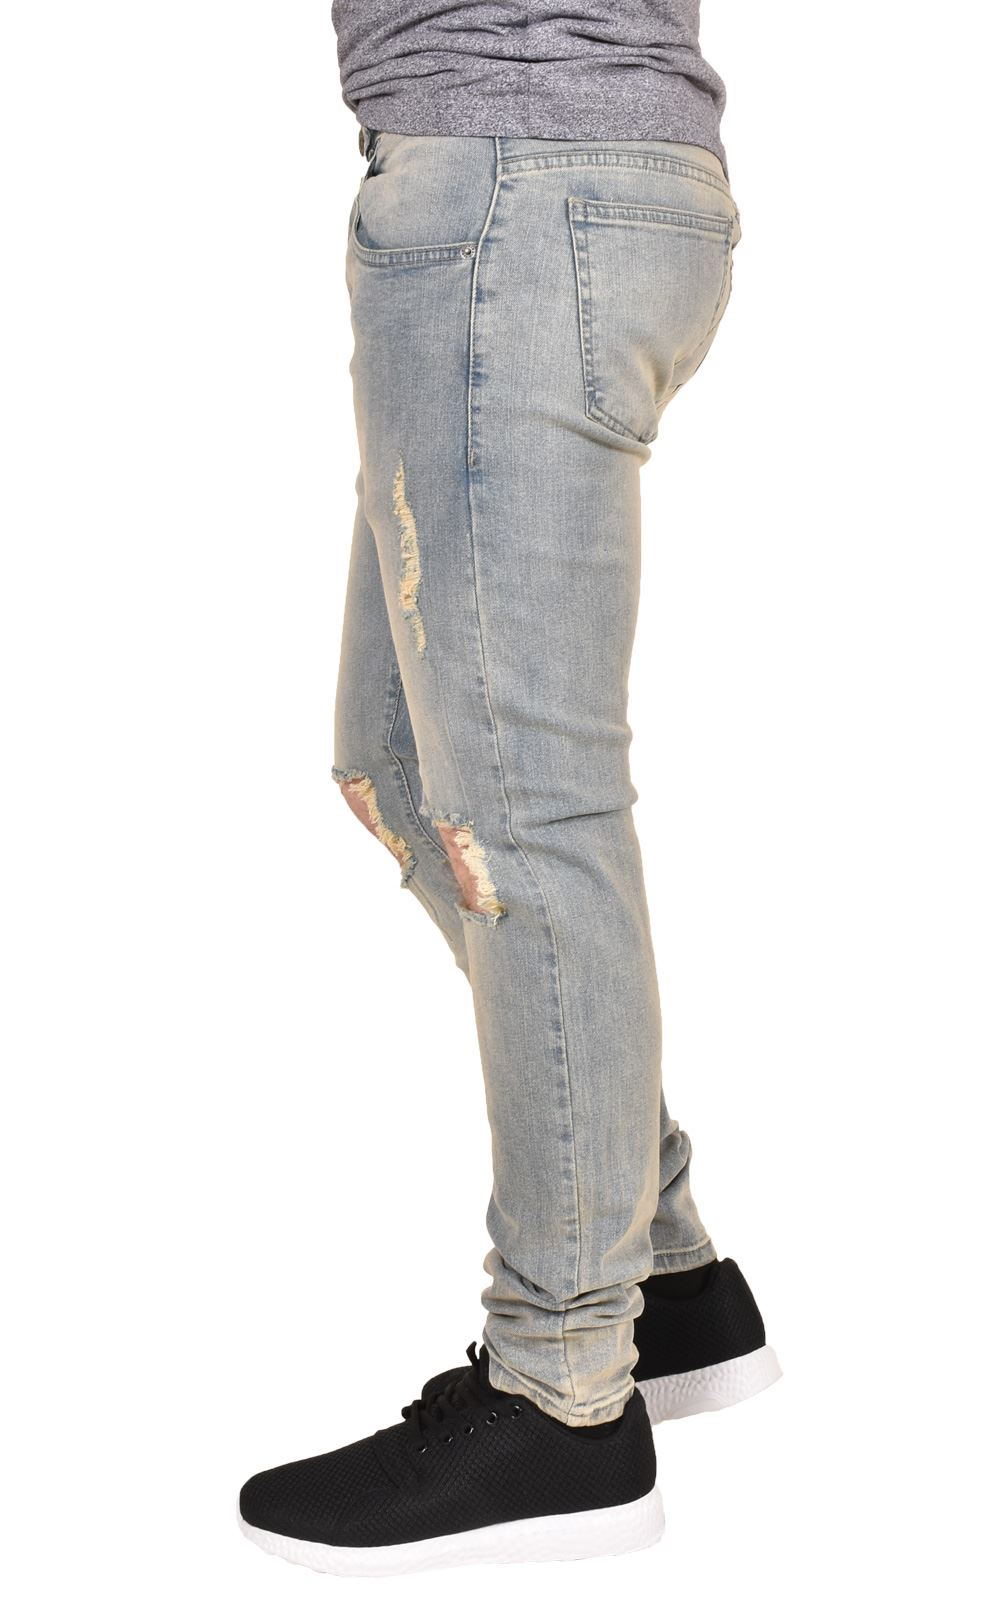 Mens-Ripped-Jeans-Skinny-Slim-Fit-Stretch-Distressed-Denim-Pants-Trousers-28-40 thumbnail 9